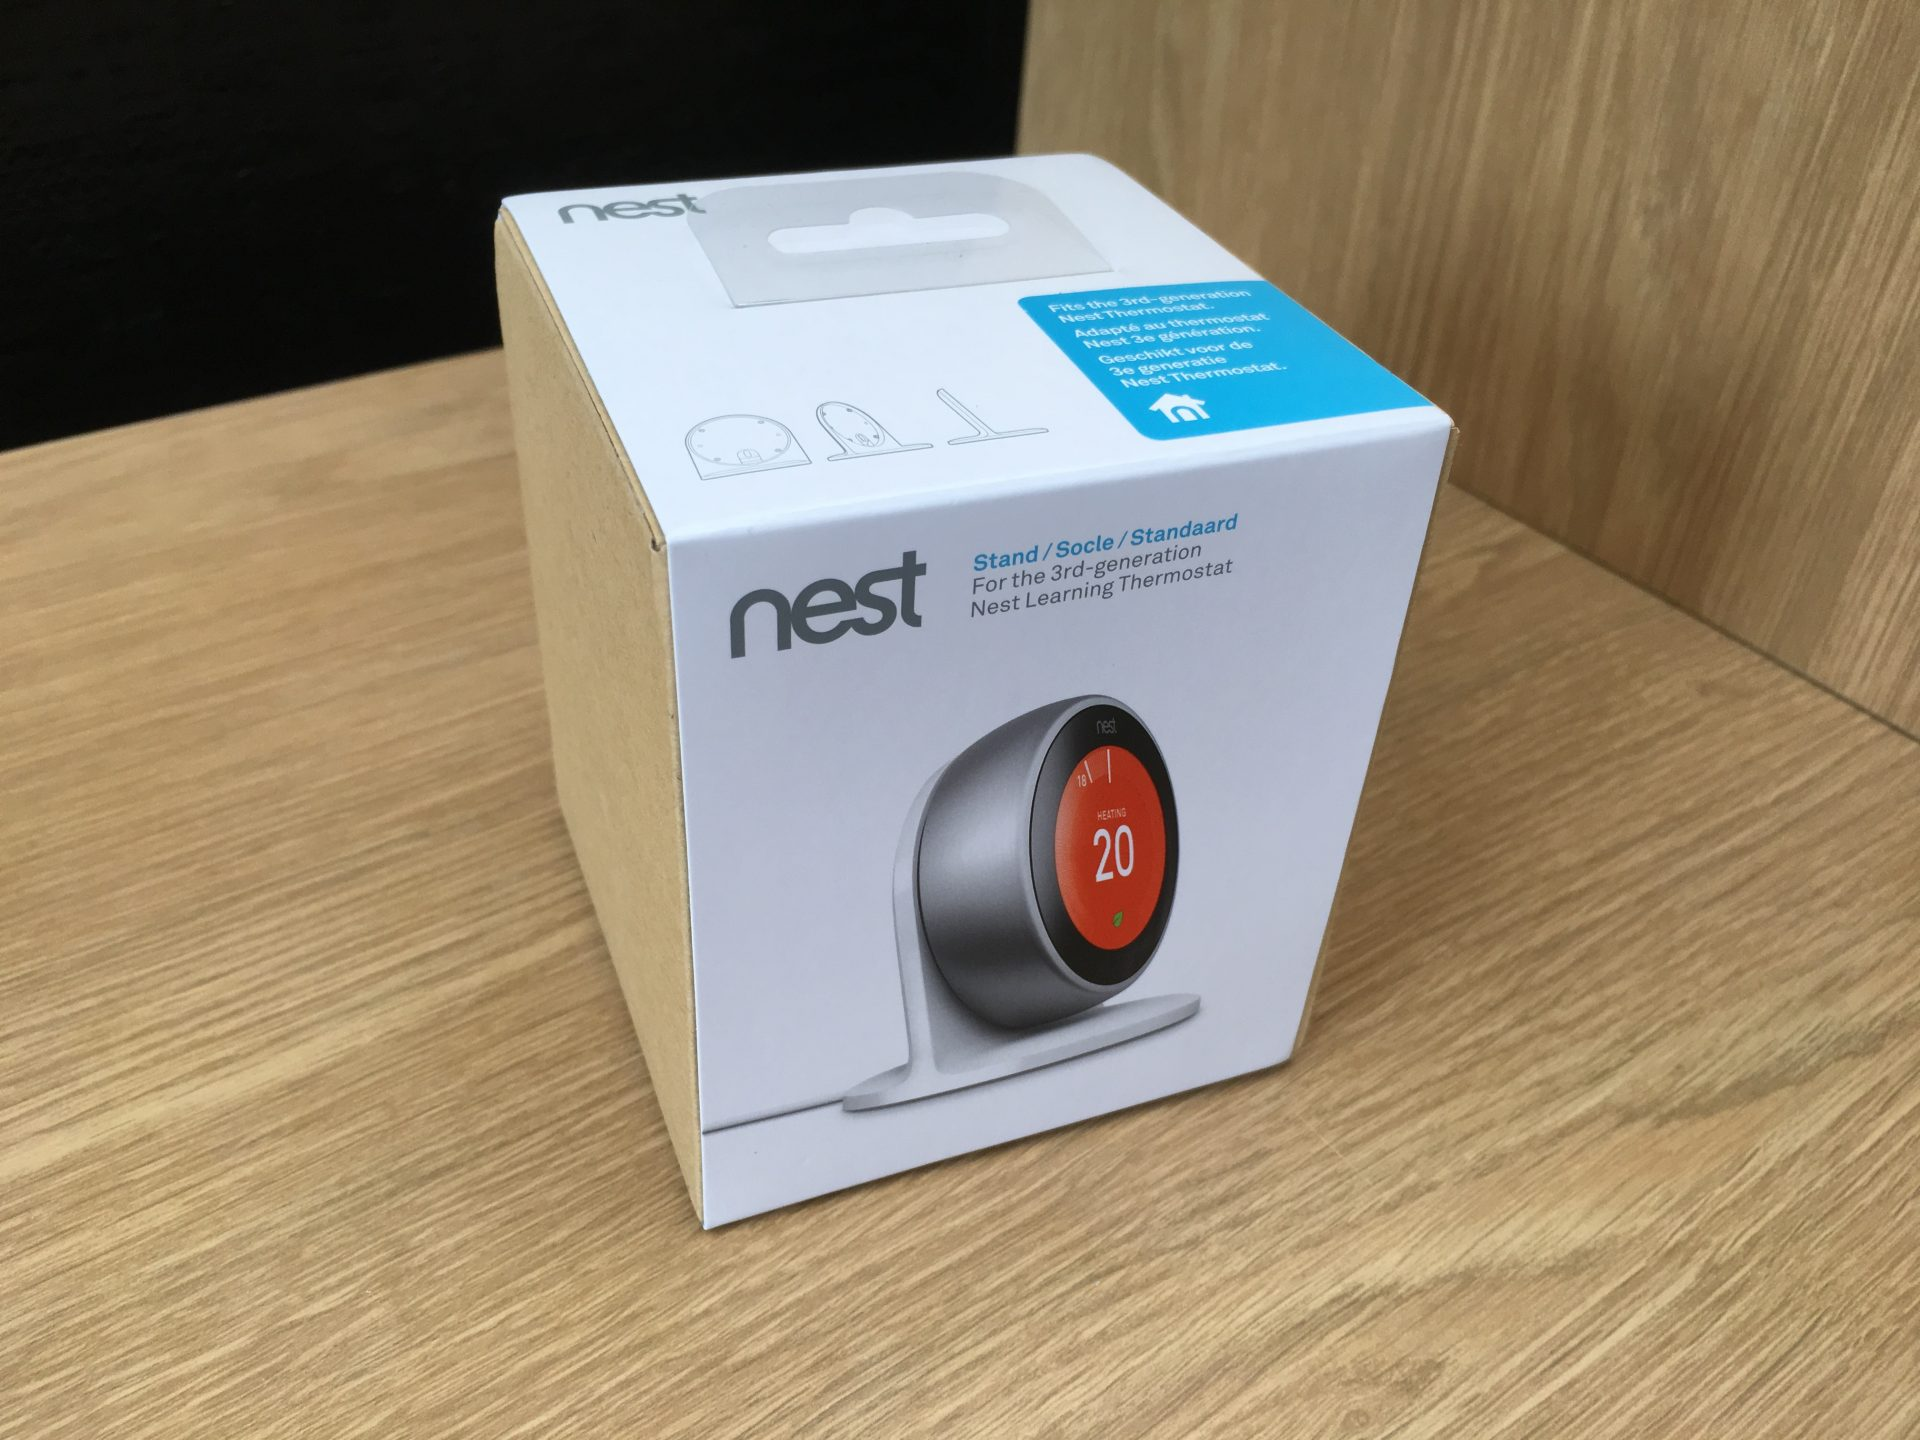 3Rd Generation Nest Wiring Diagram from lifeofman.co.uk